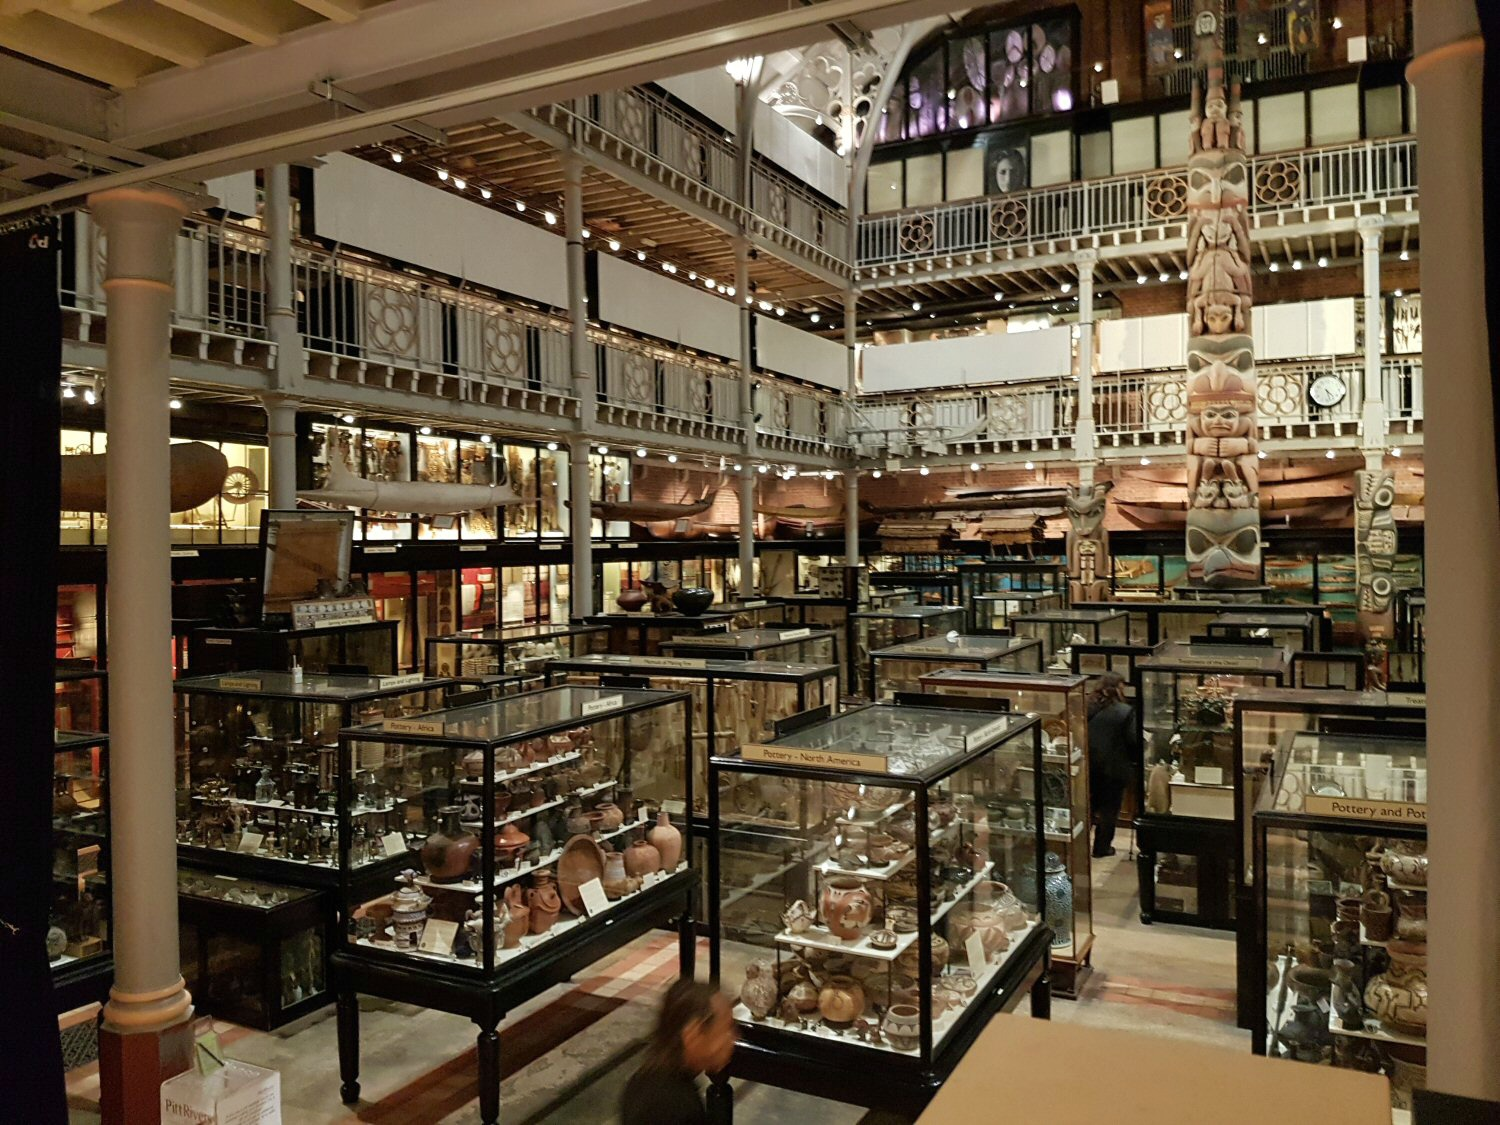 The collections at the Pitt Rivers museum. Our Oxford University natural history museum day out